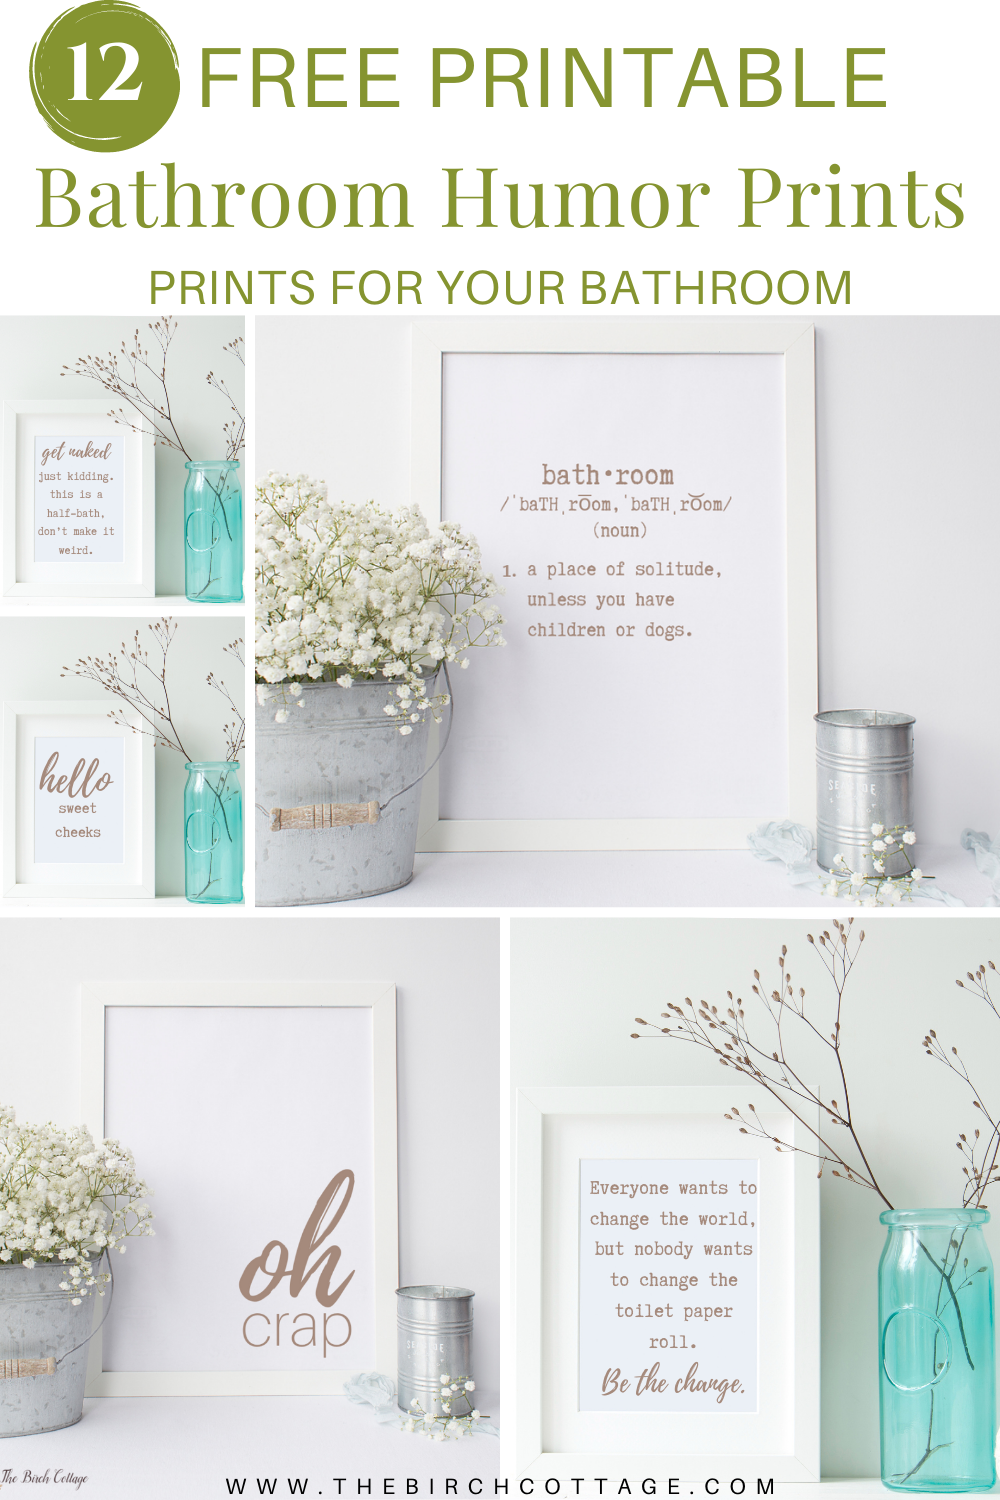 Add a little touch of whimsy, fun and humor to your bathroom decor with these 12 free printable bathroom humor prints. Funny, light-hearted and free!